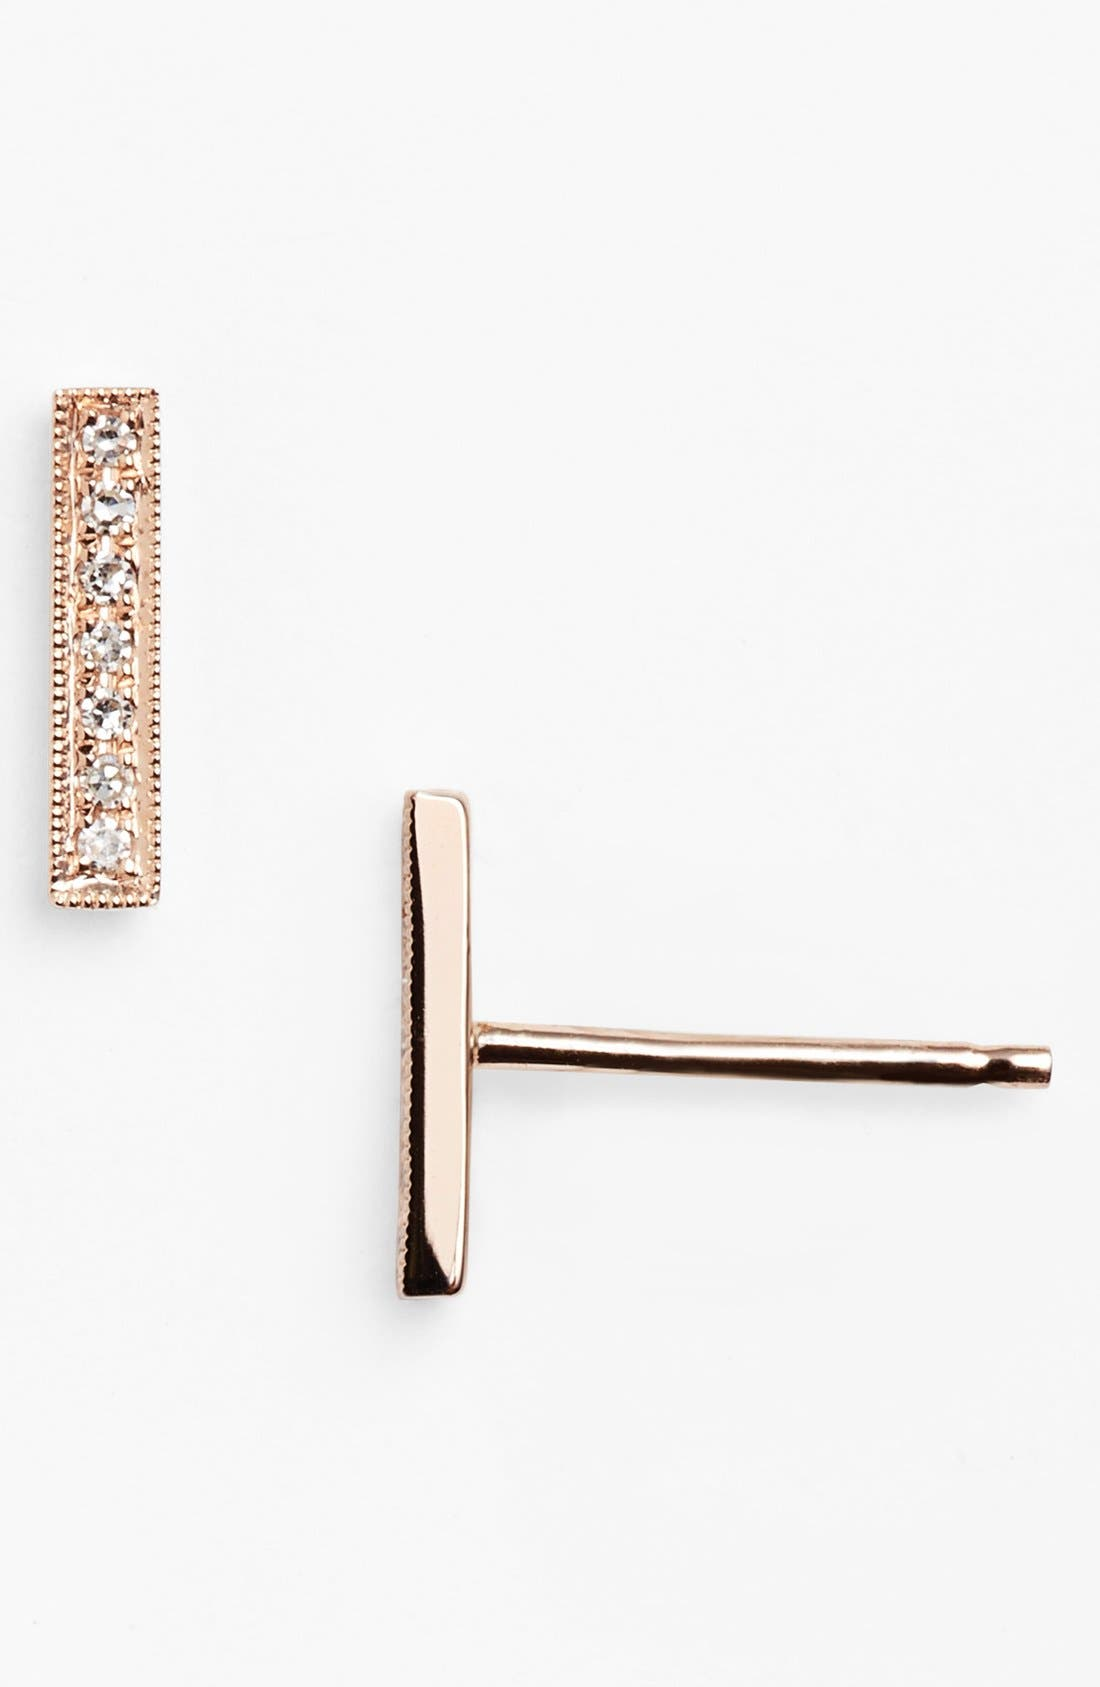 Dana Rebecca Designs 'Sylvie Rose' Diamond Bar Stud Earrings